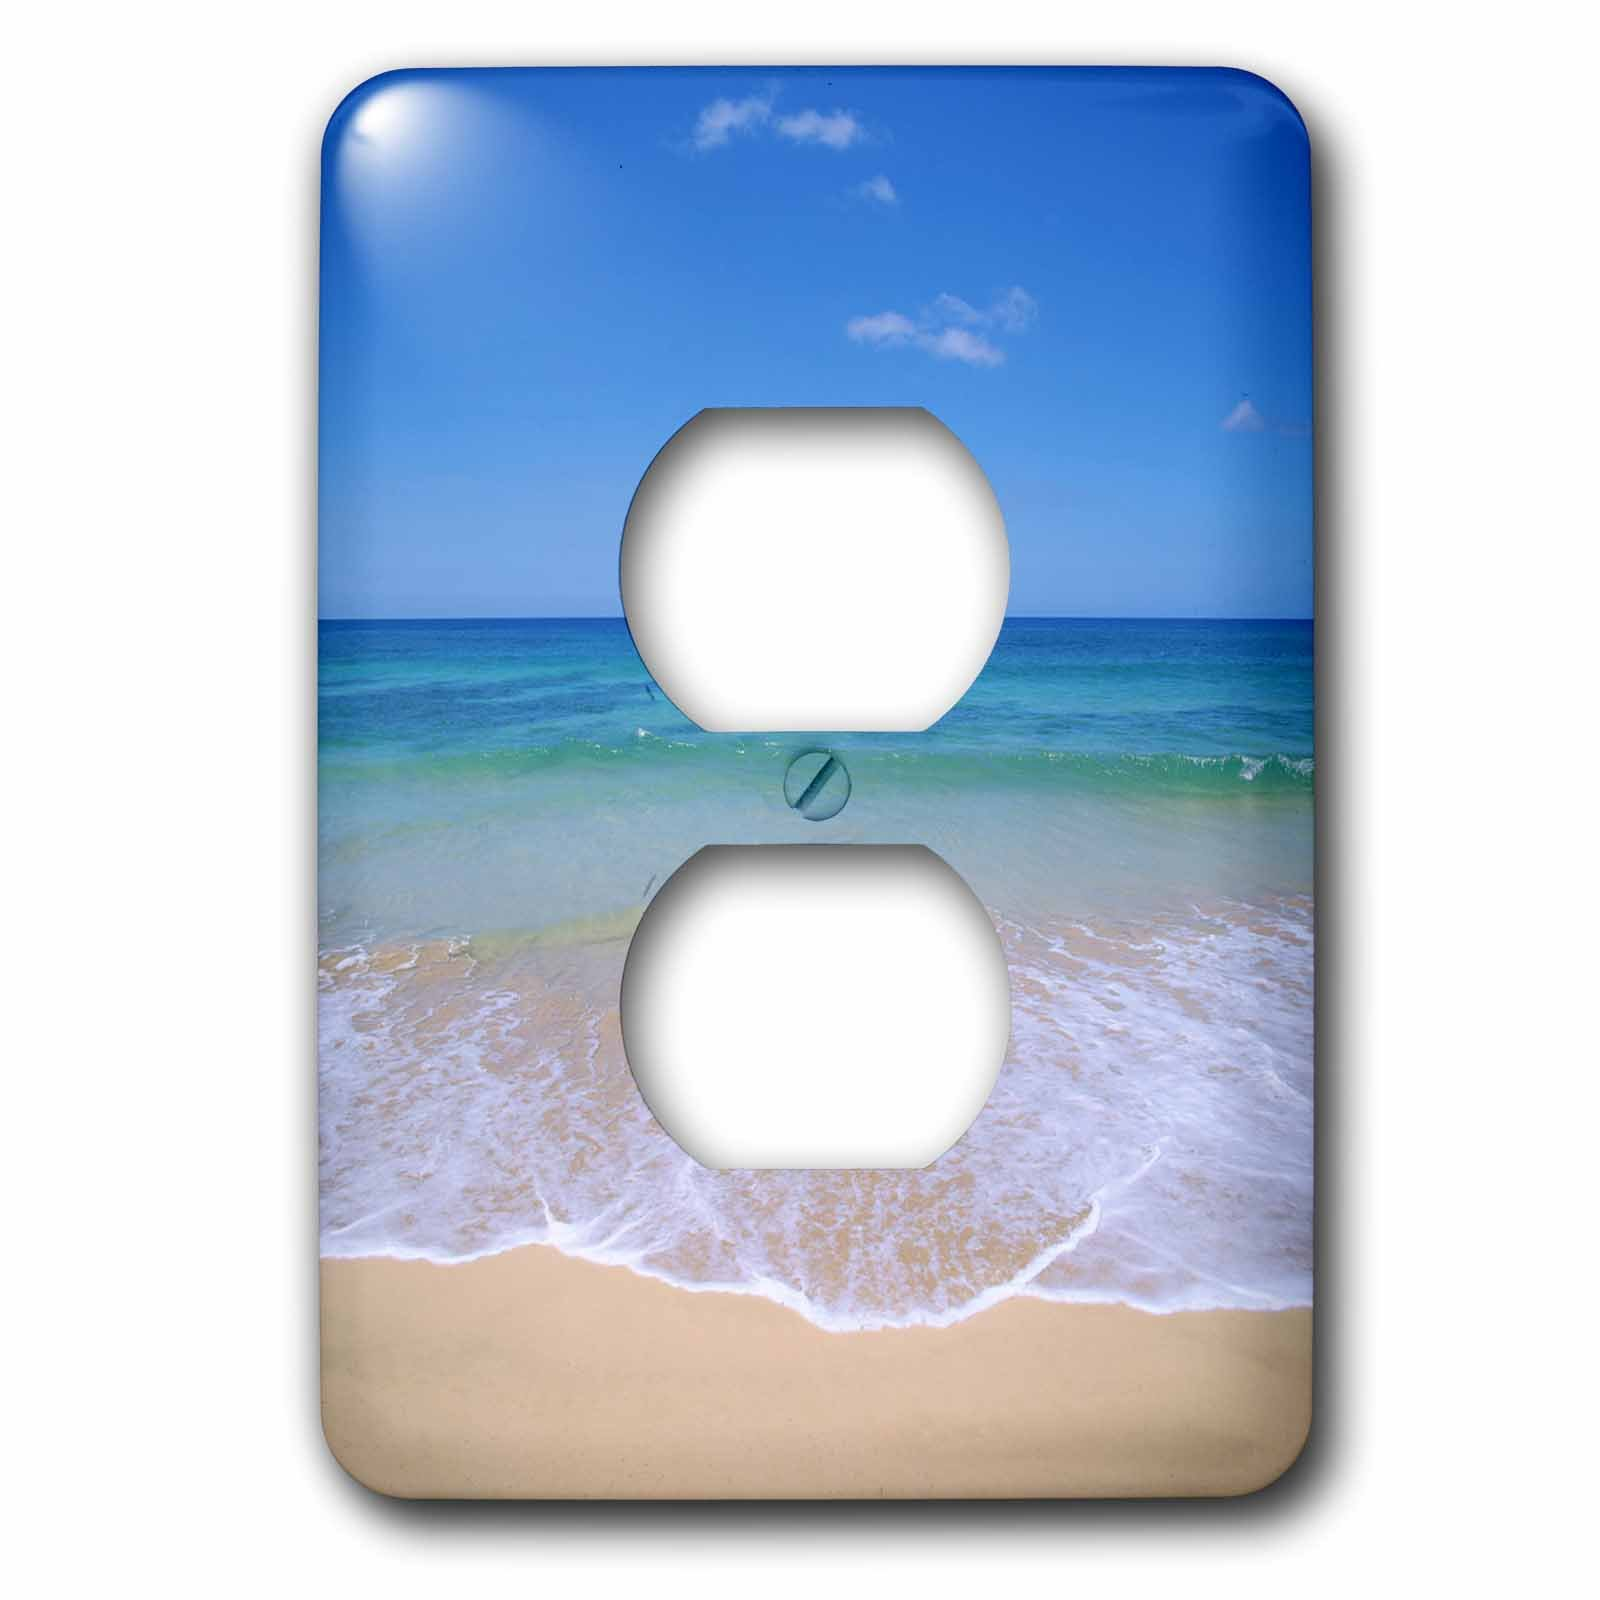 3dRose LLC lsp_89743_6 Beach, Hawaii, USA  Us12 Dpb1652  Douglas Peebles  2 Plug Outlet Cover by 3dRose